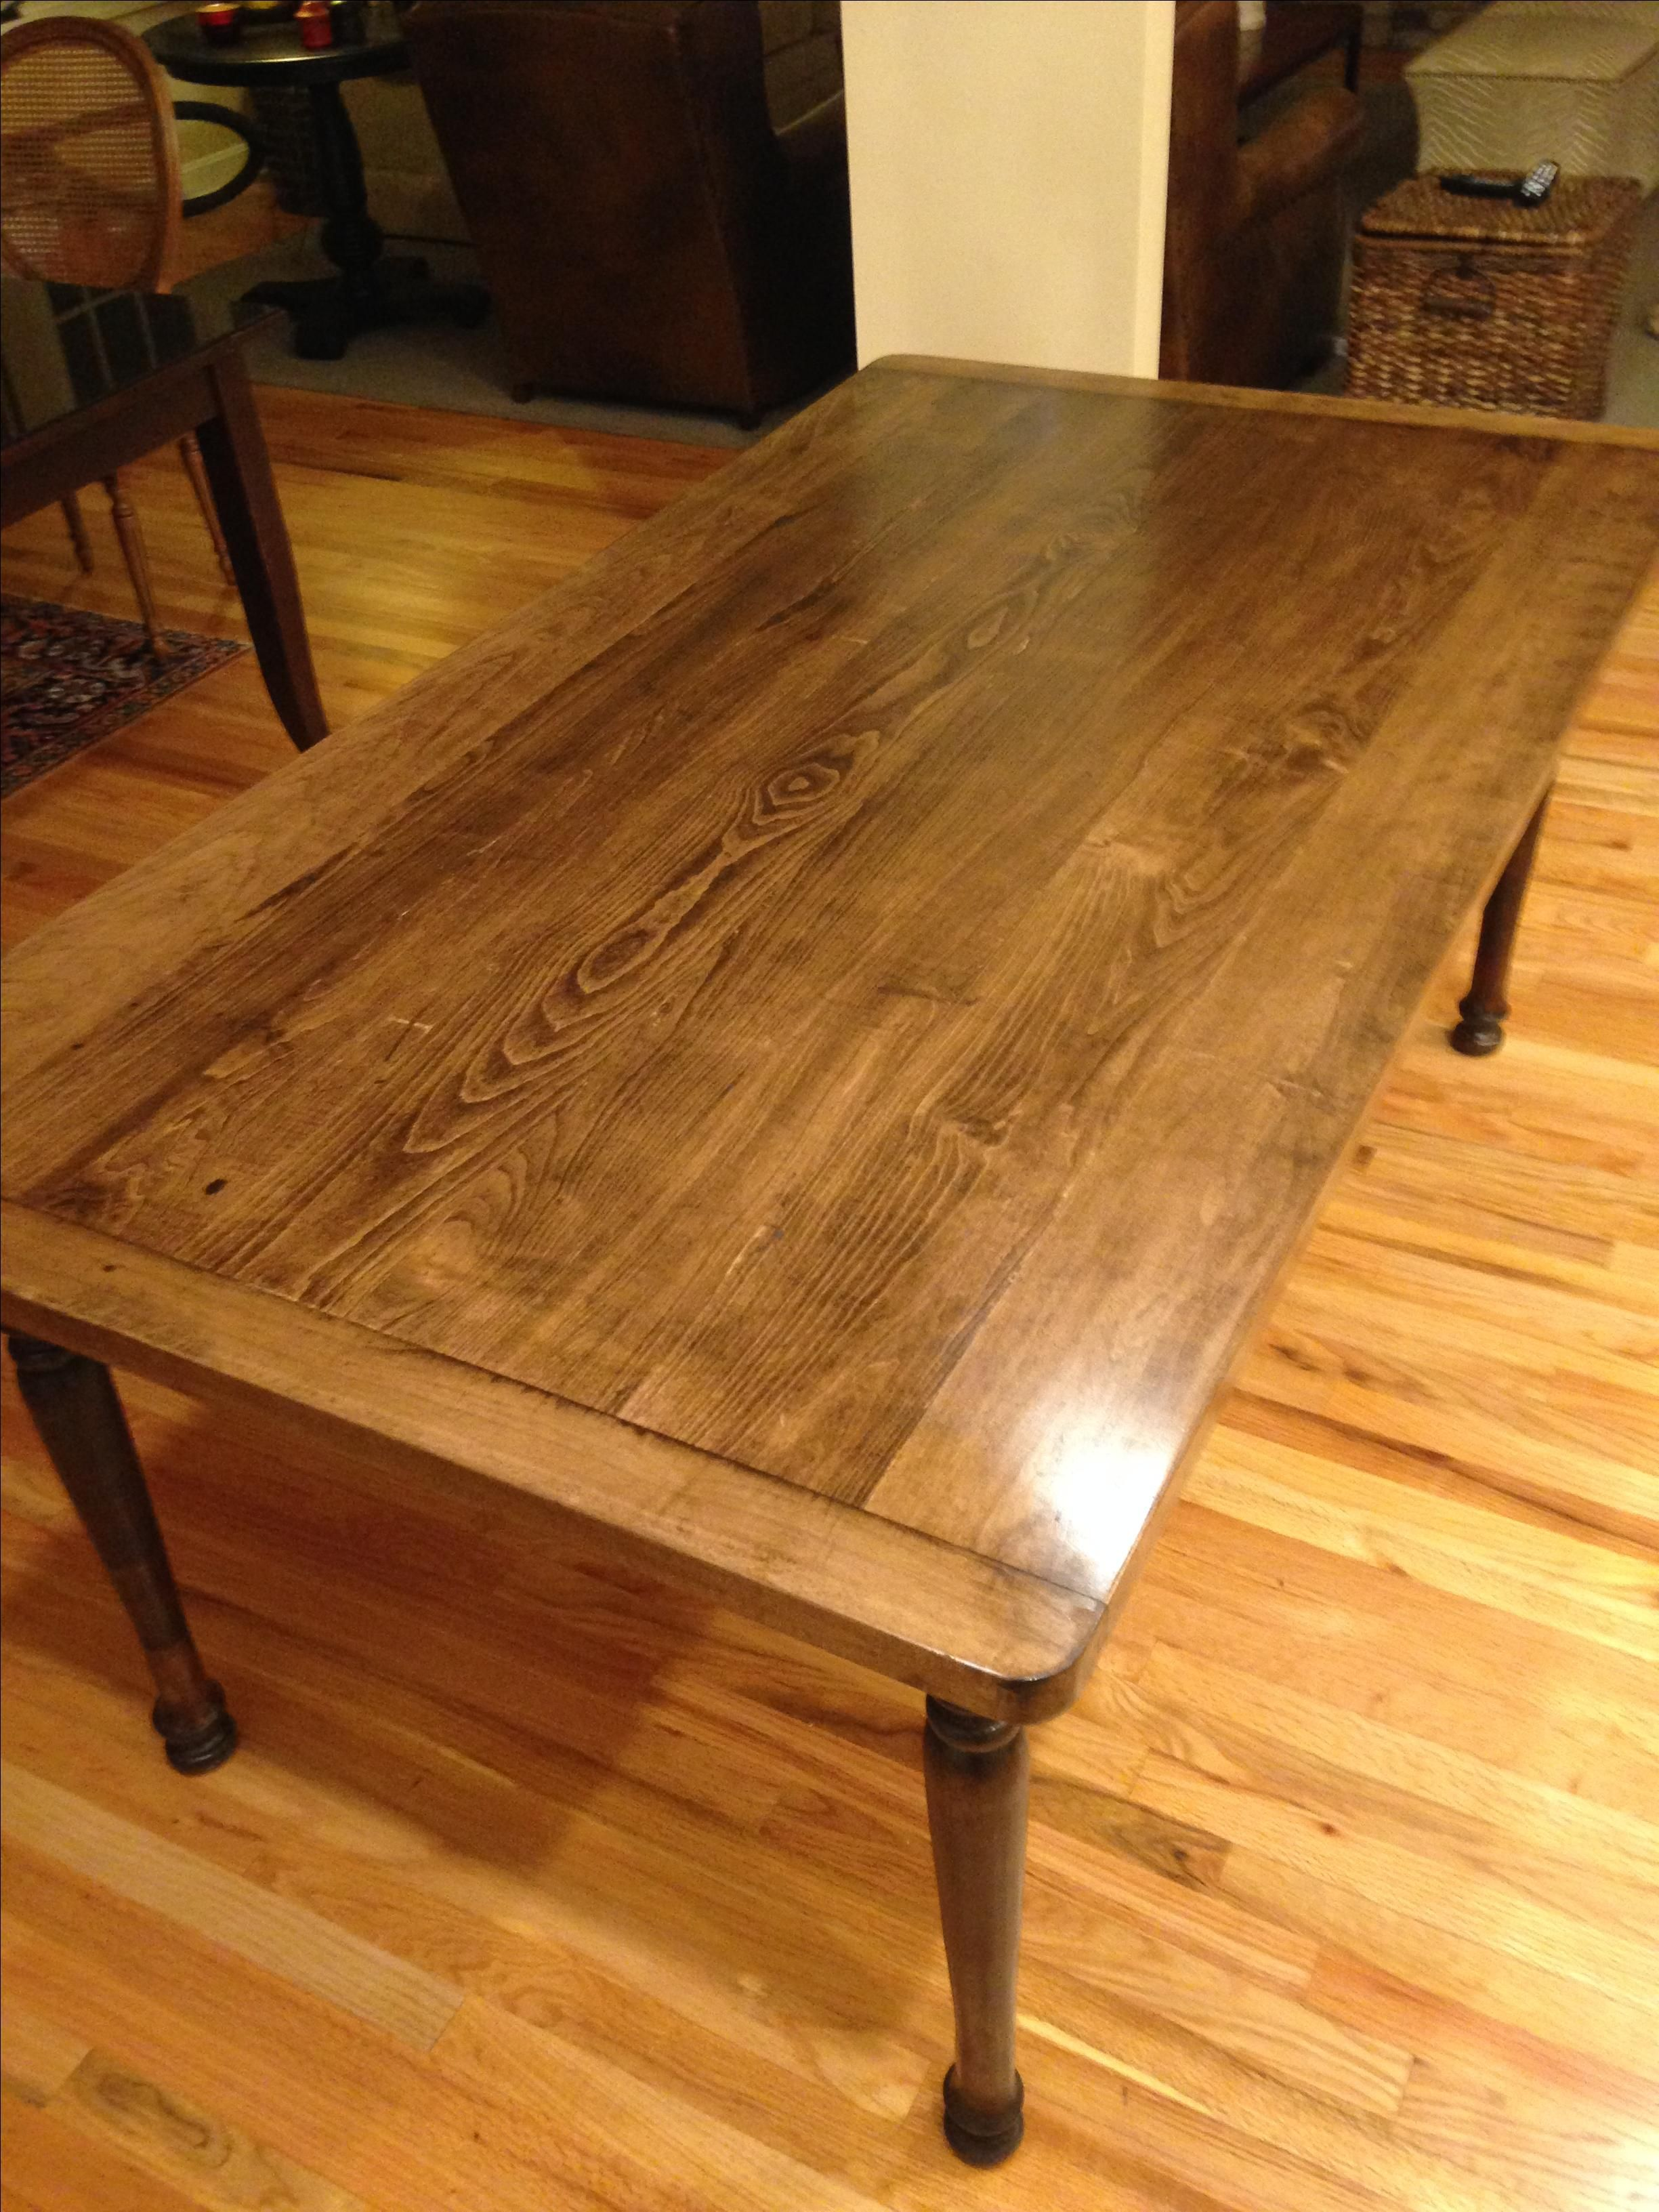 Hand Crafted Solid Maple Farmhouse Dining Table With Turned Legs By Edelmans Wood Designs